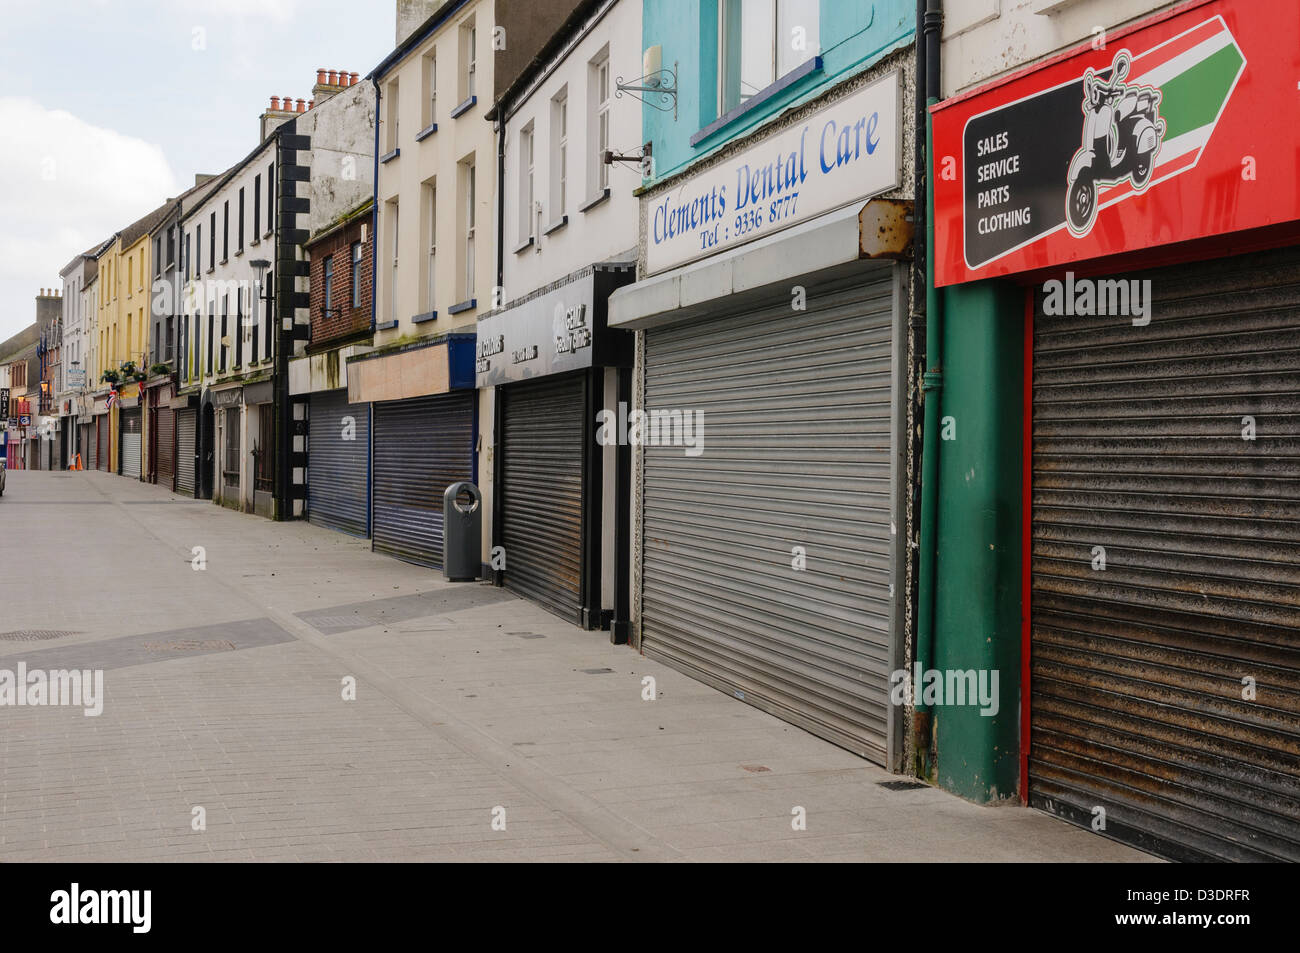 Street with shops all closed up and shuttered - Stock Image